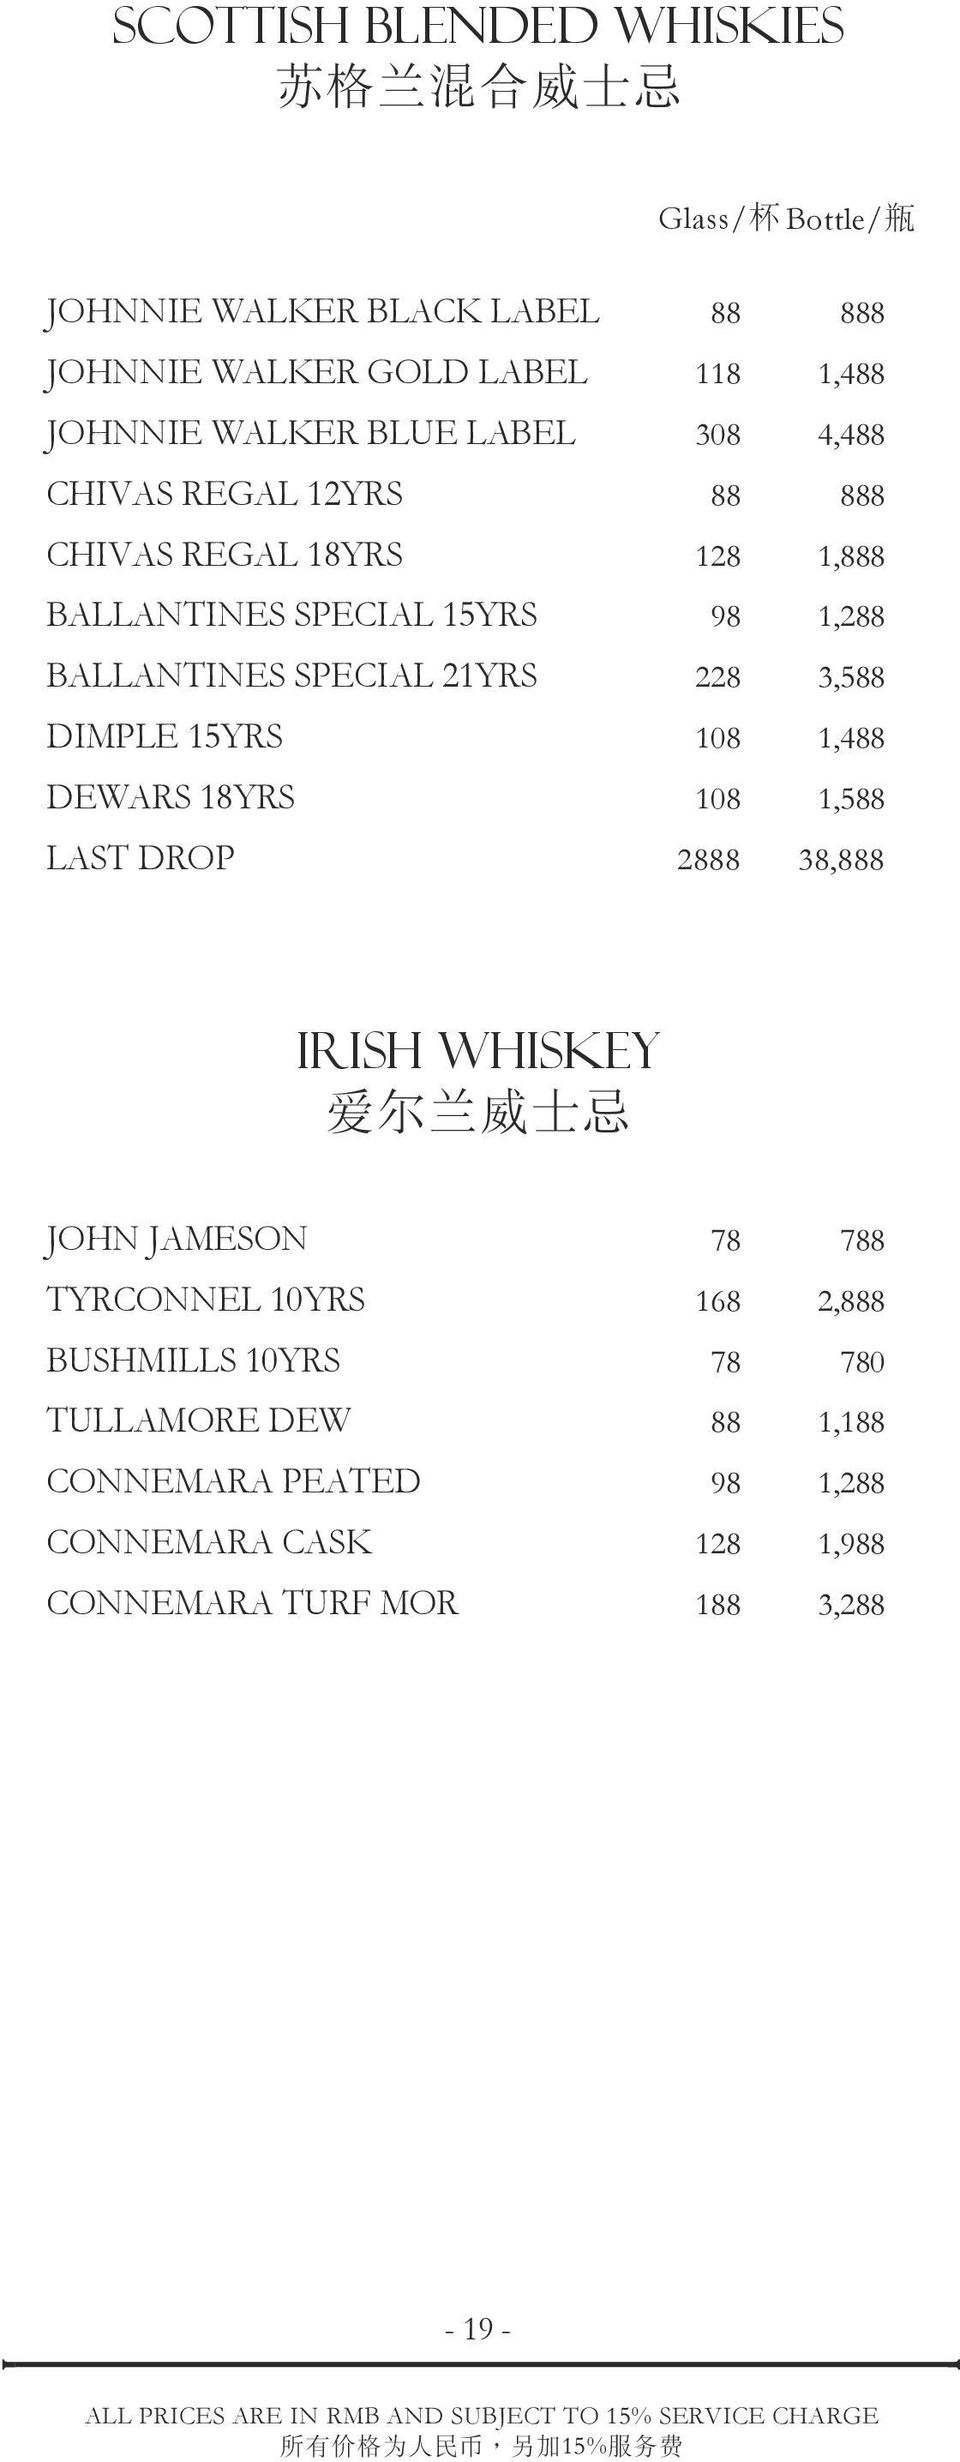 21YRS 228 3,588 DIMPLE 15YRS 108 1,488 DEWARS 18YRS 108 1,588 LAST DROP 2888 38,888 IRISH WHISKEY 爱 尔 兰 威 士 忌 JOHN JAMESON 78 788 TYRCONNEL